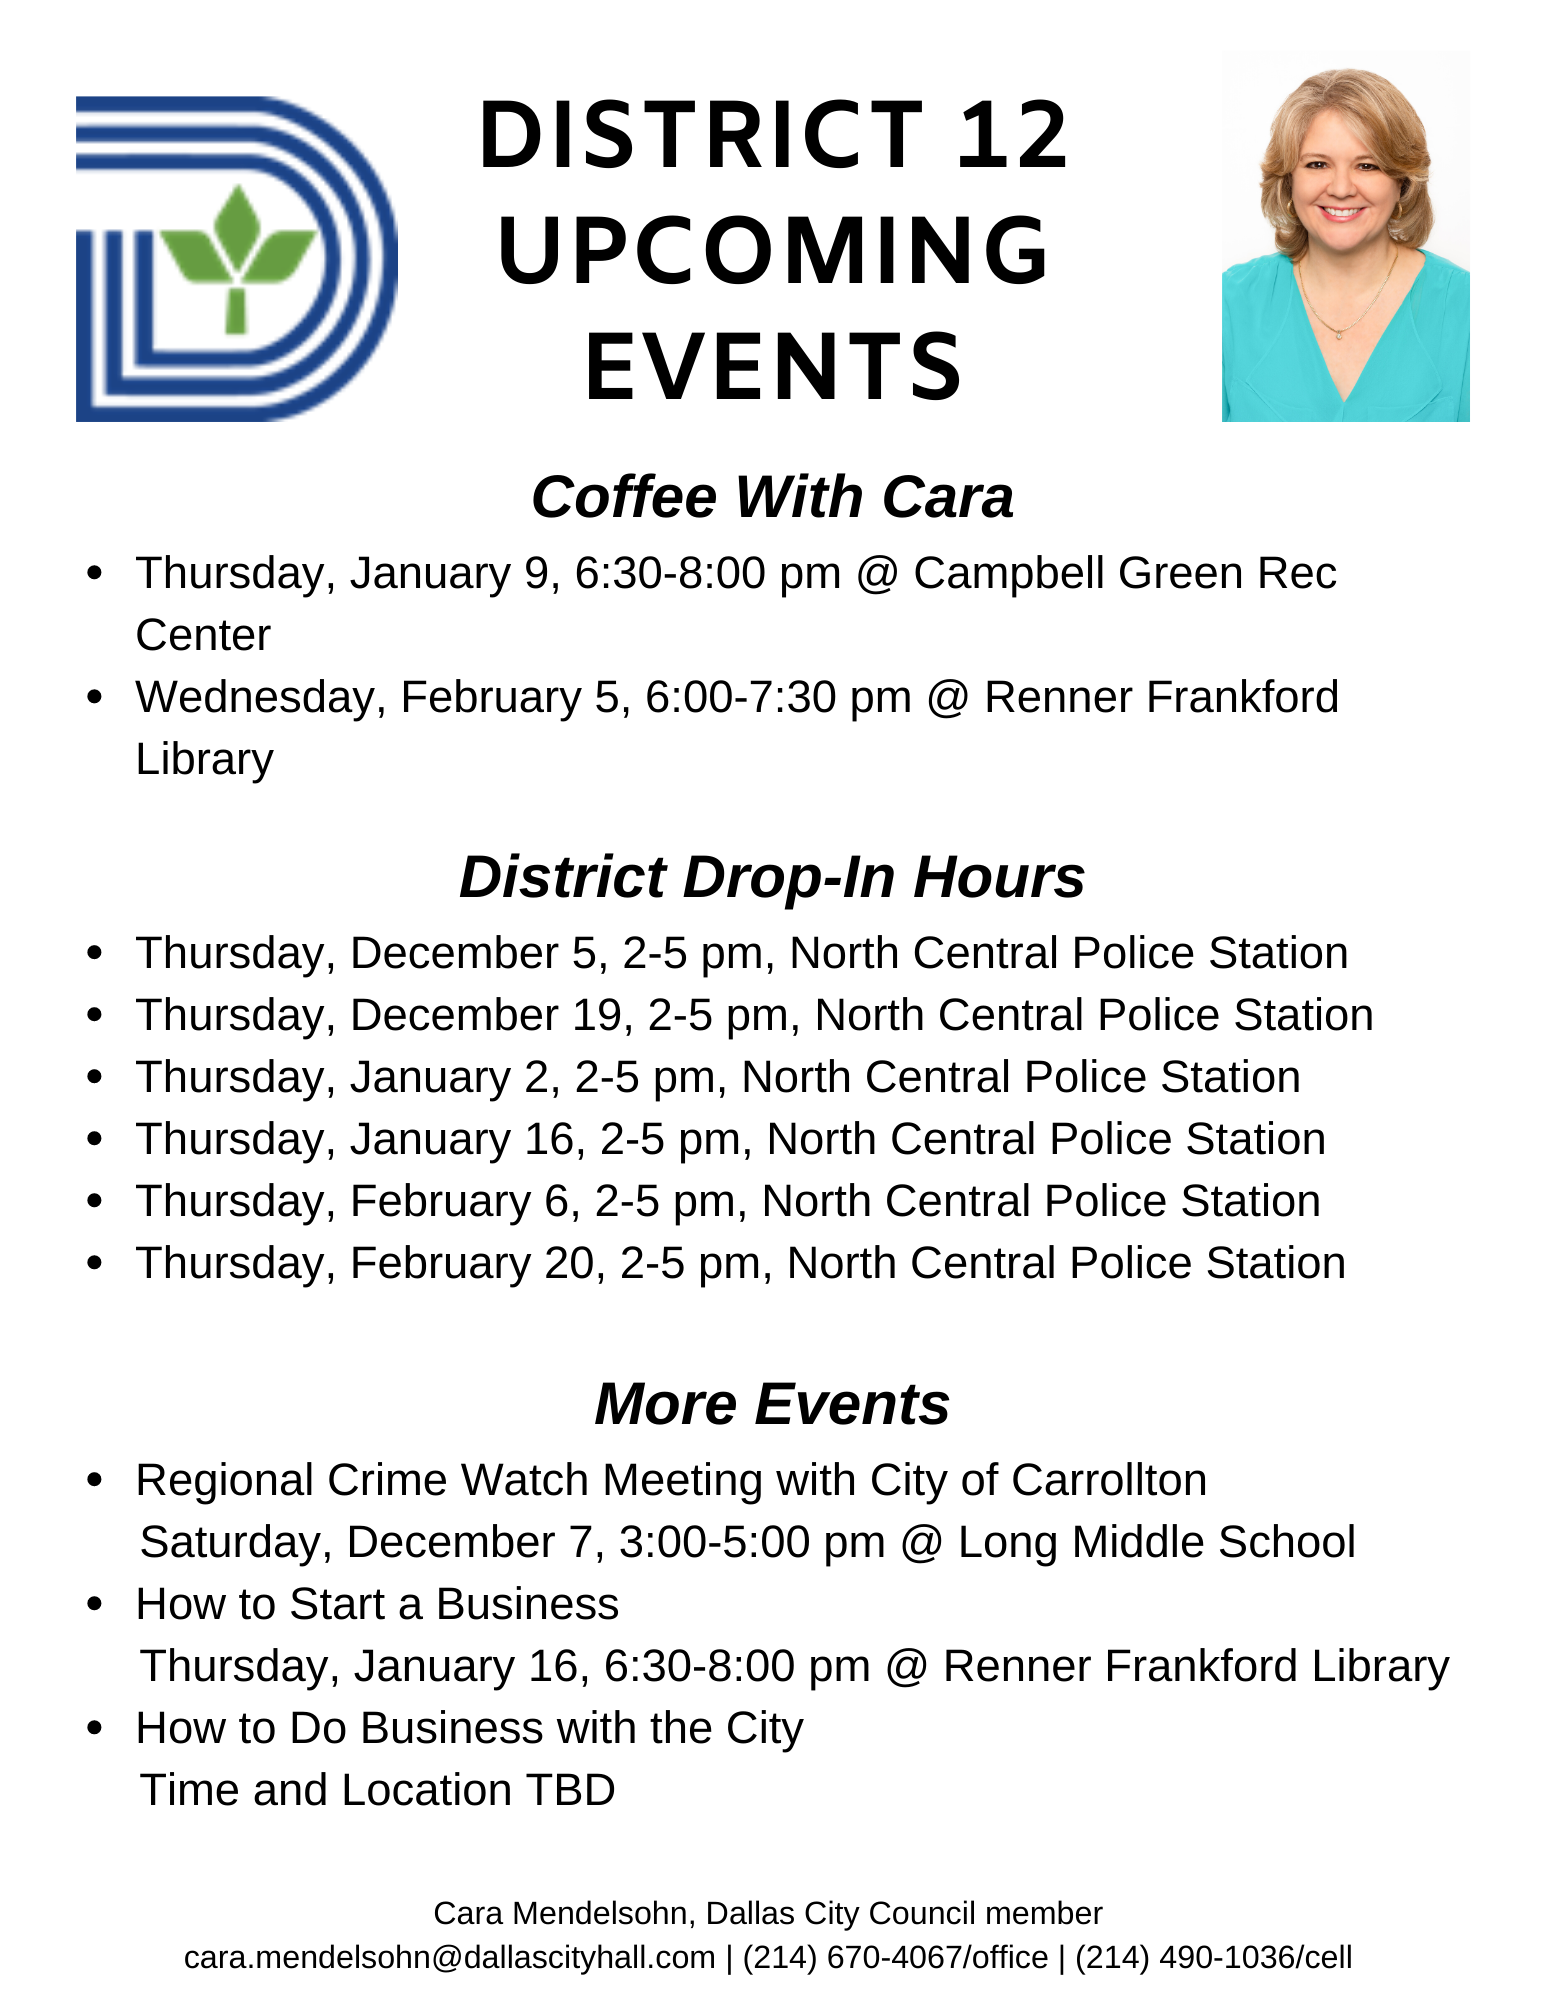 Copy of District 12 Upcoming Events.png